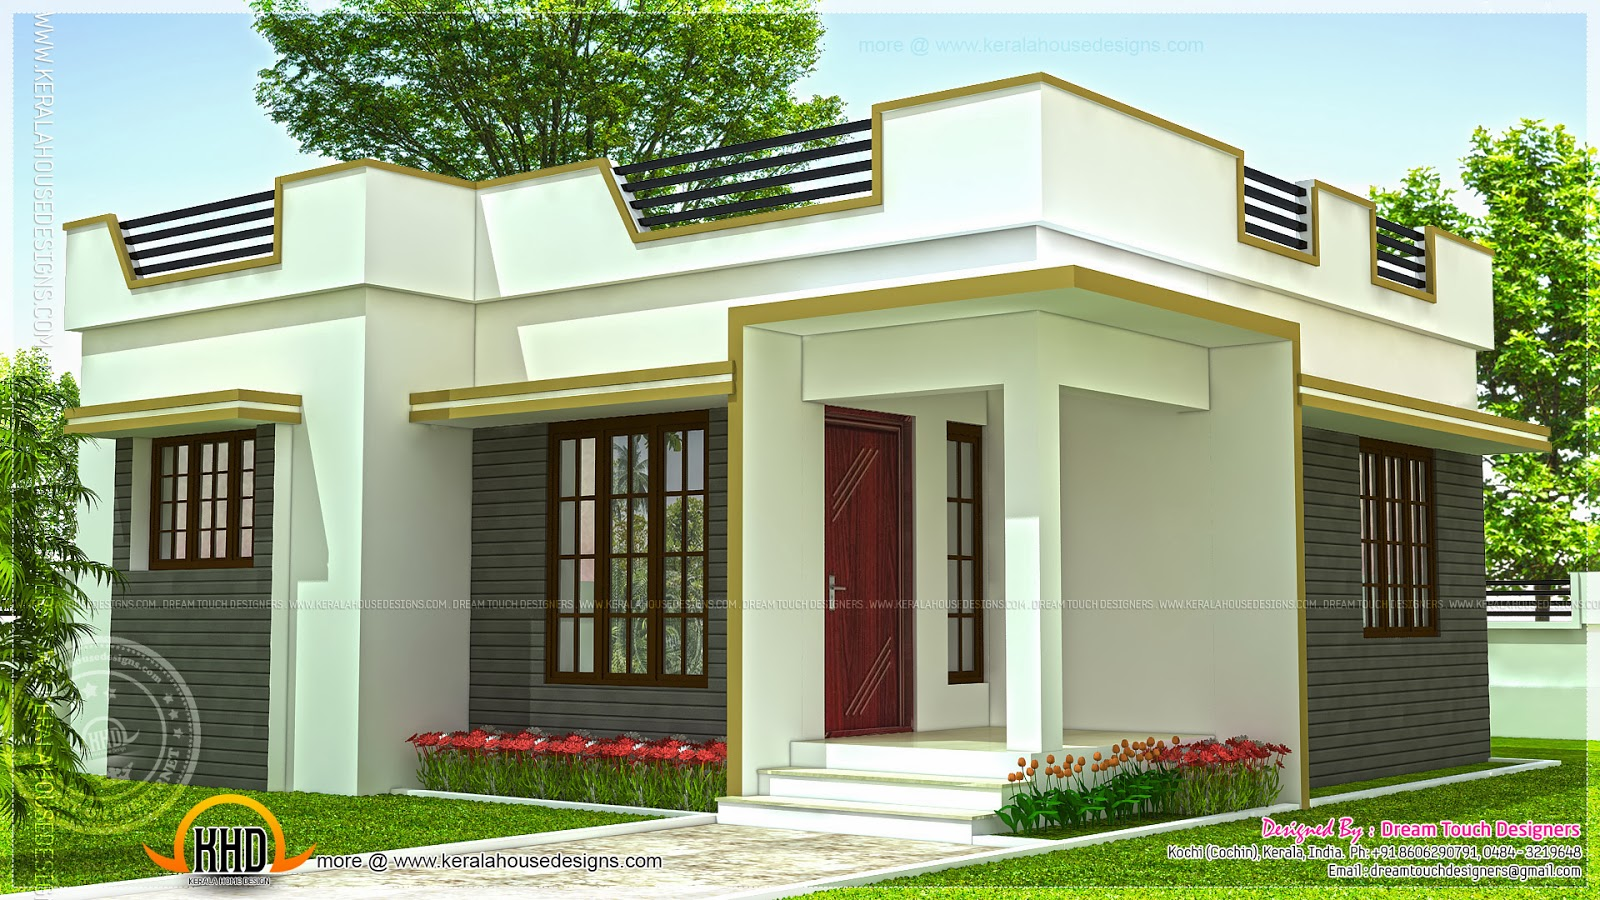 lately 21 small house design kerala small house kerala - View Small Simple House Design With Rooftop Background